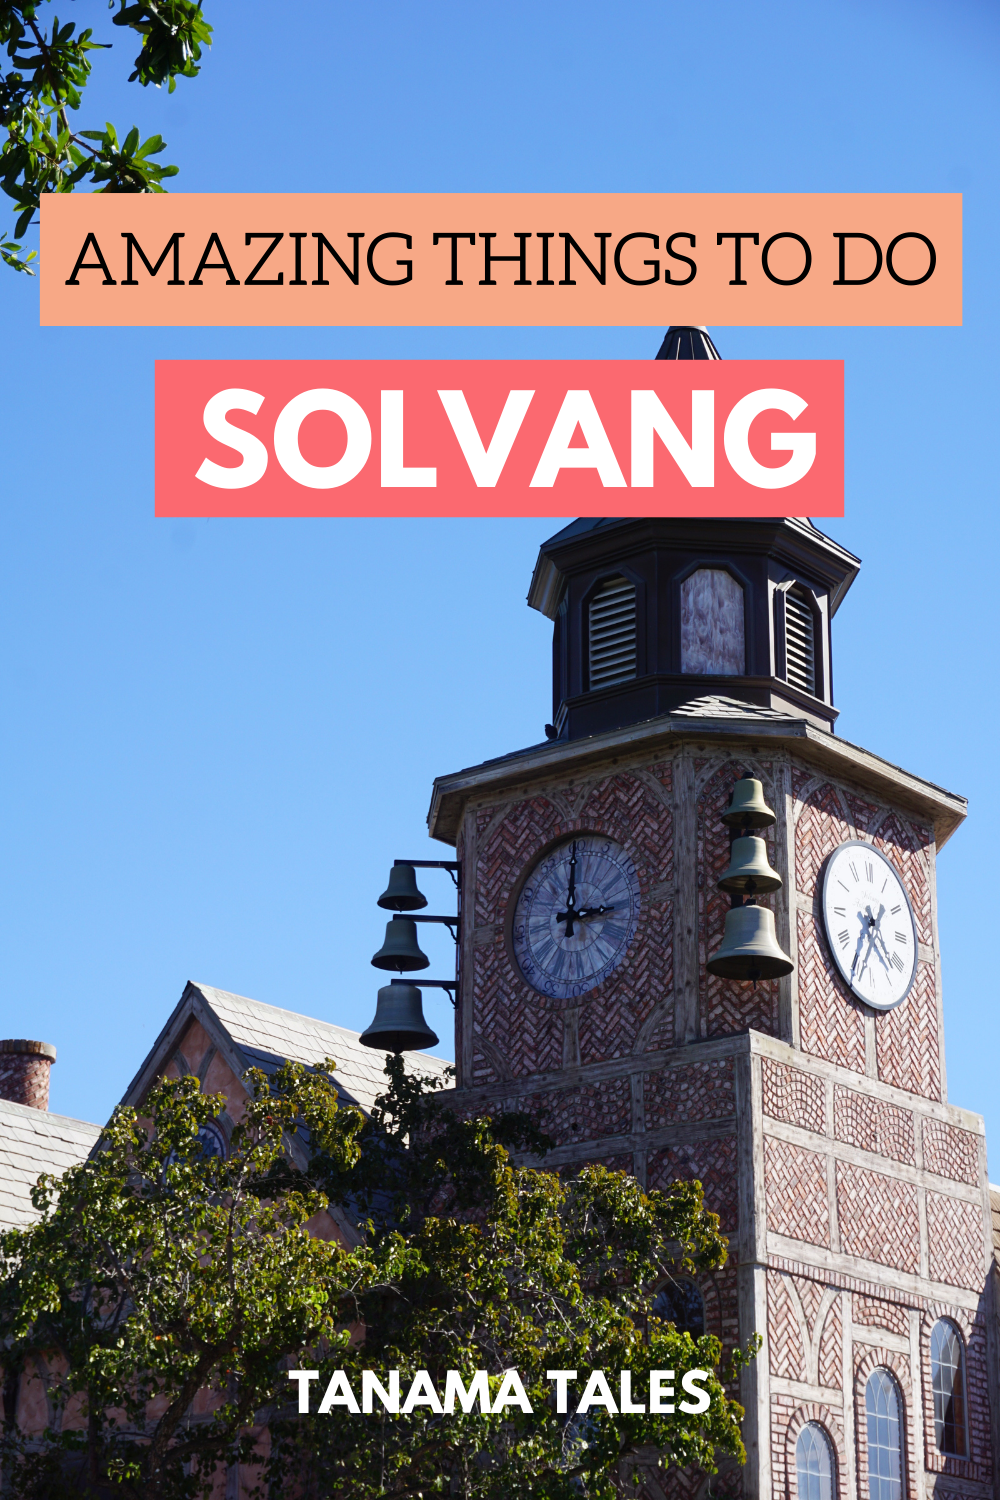 Things to Do in Solvang, California: Attractions and Food - Tanama Tales in 2020 | North america ...